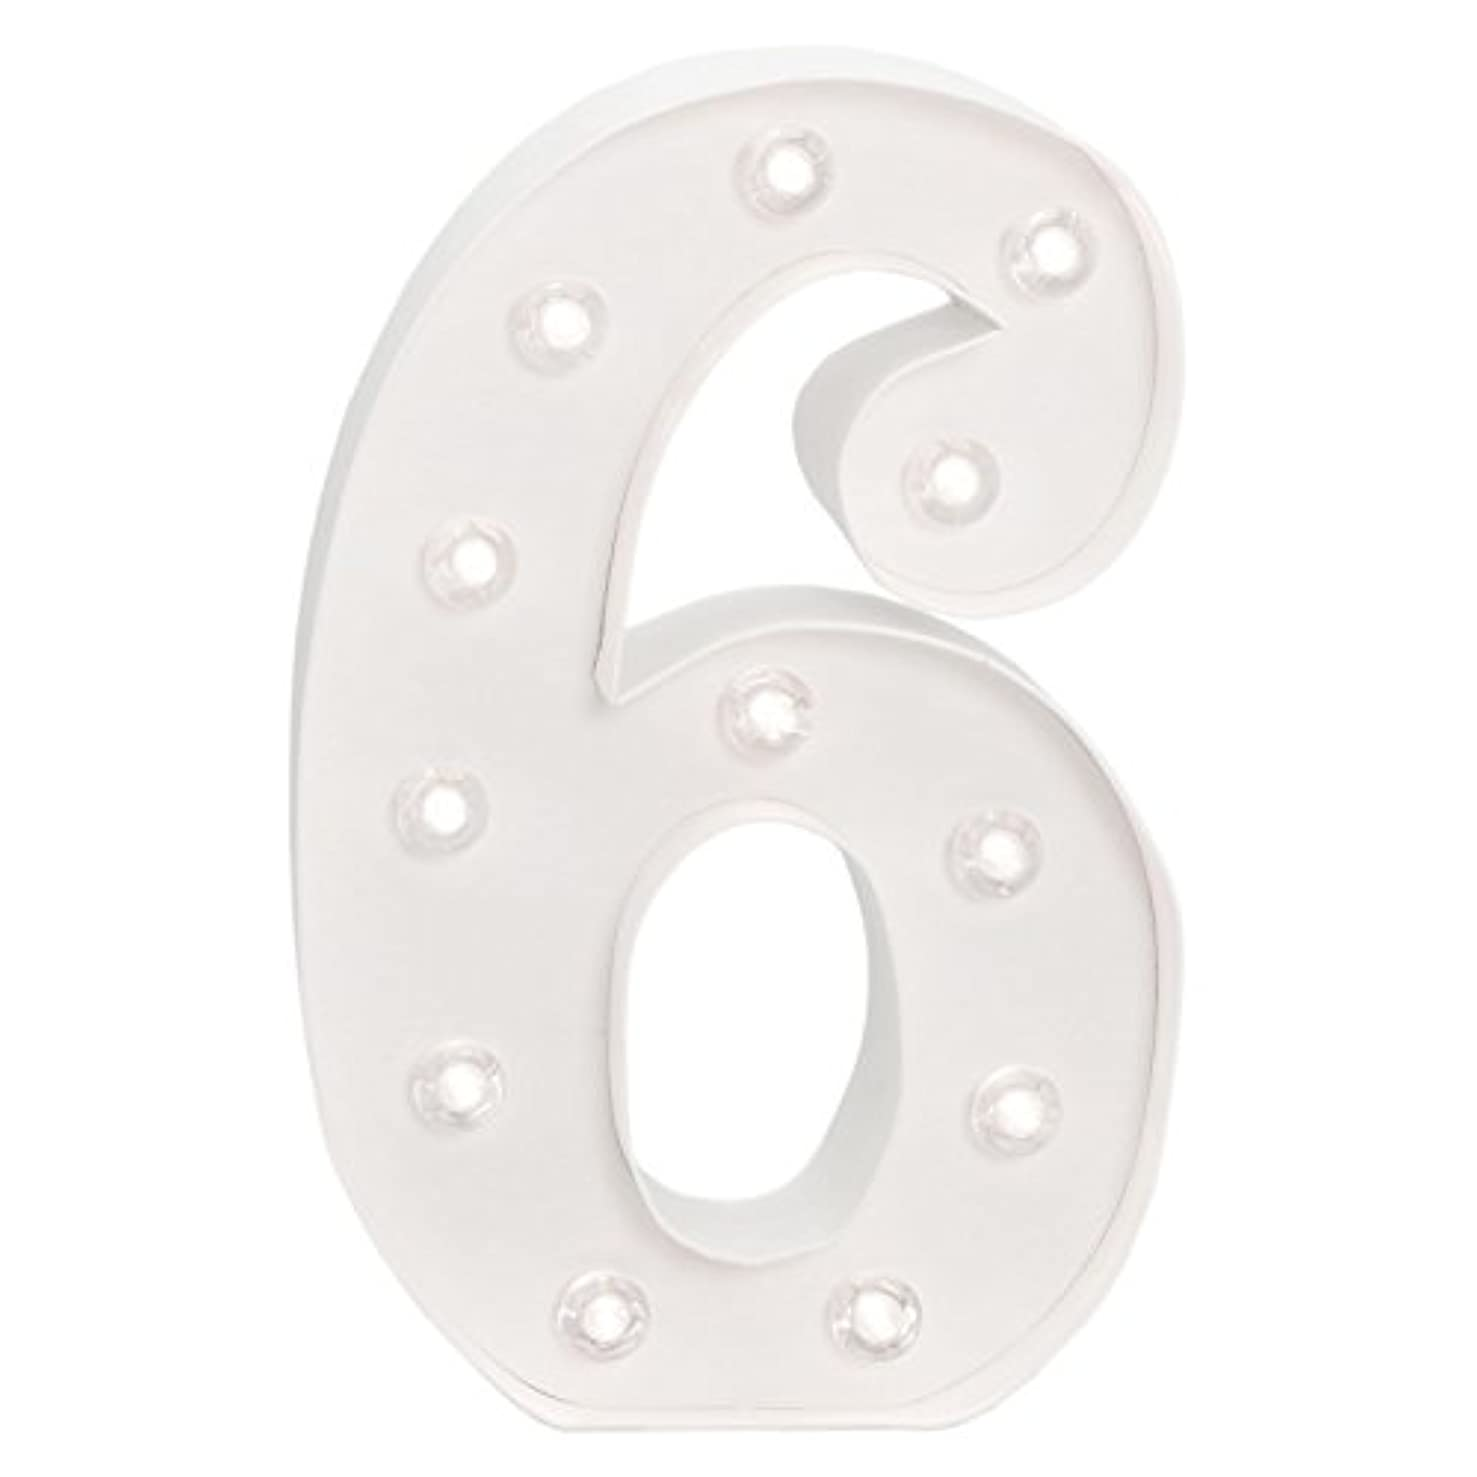 American Crafts Heidi Swapp 10 Inch Marquee Letters Number 6